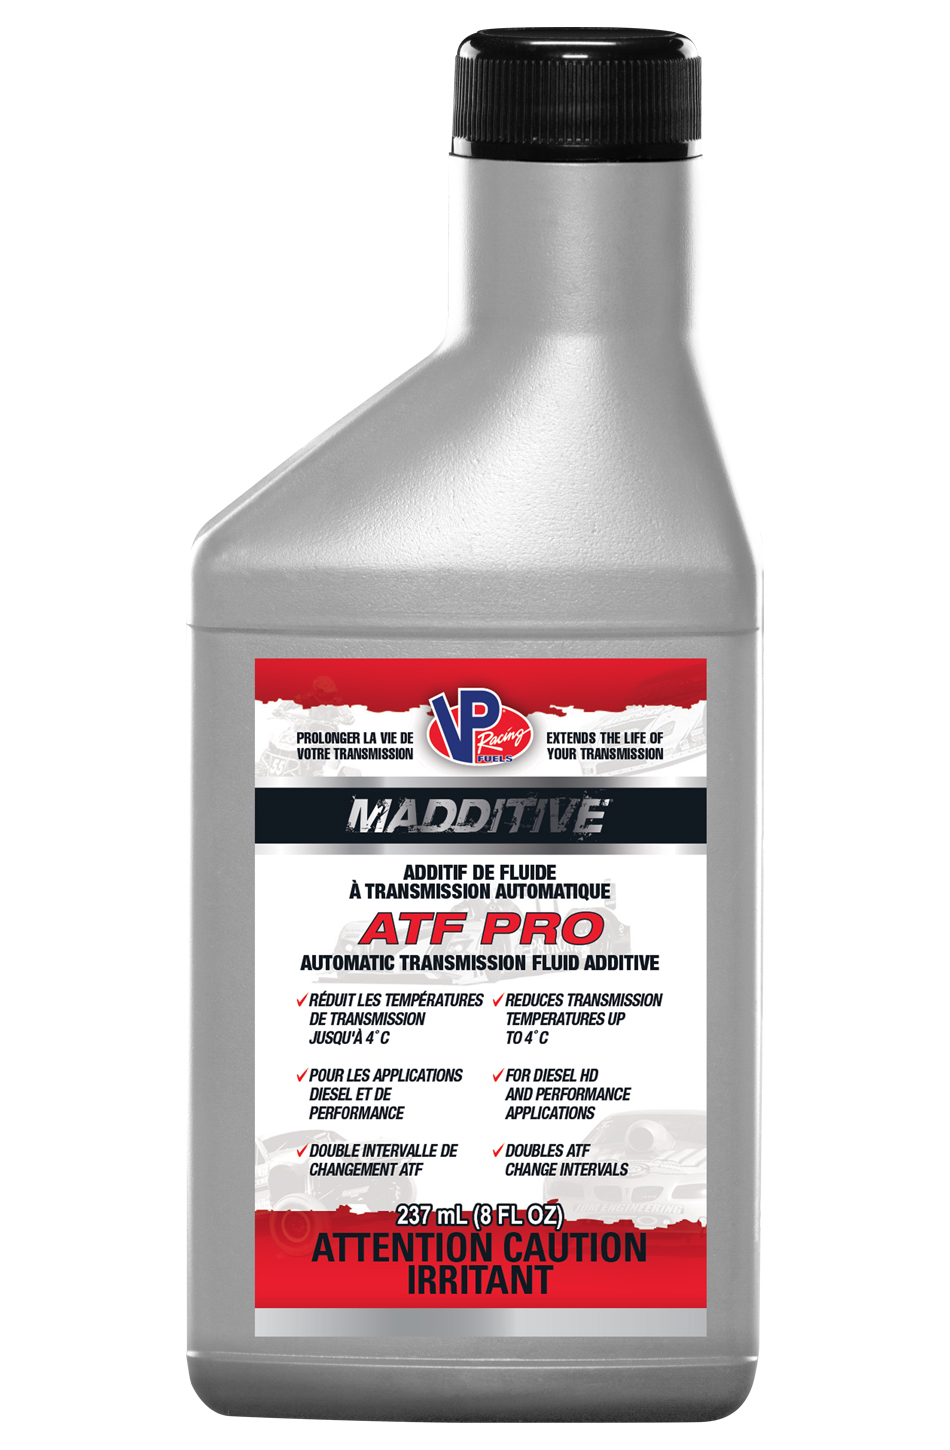 Vp Fuel Containers Transmission Additive Pro Canada 8oz